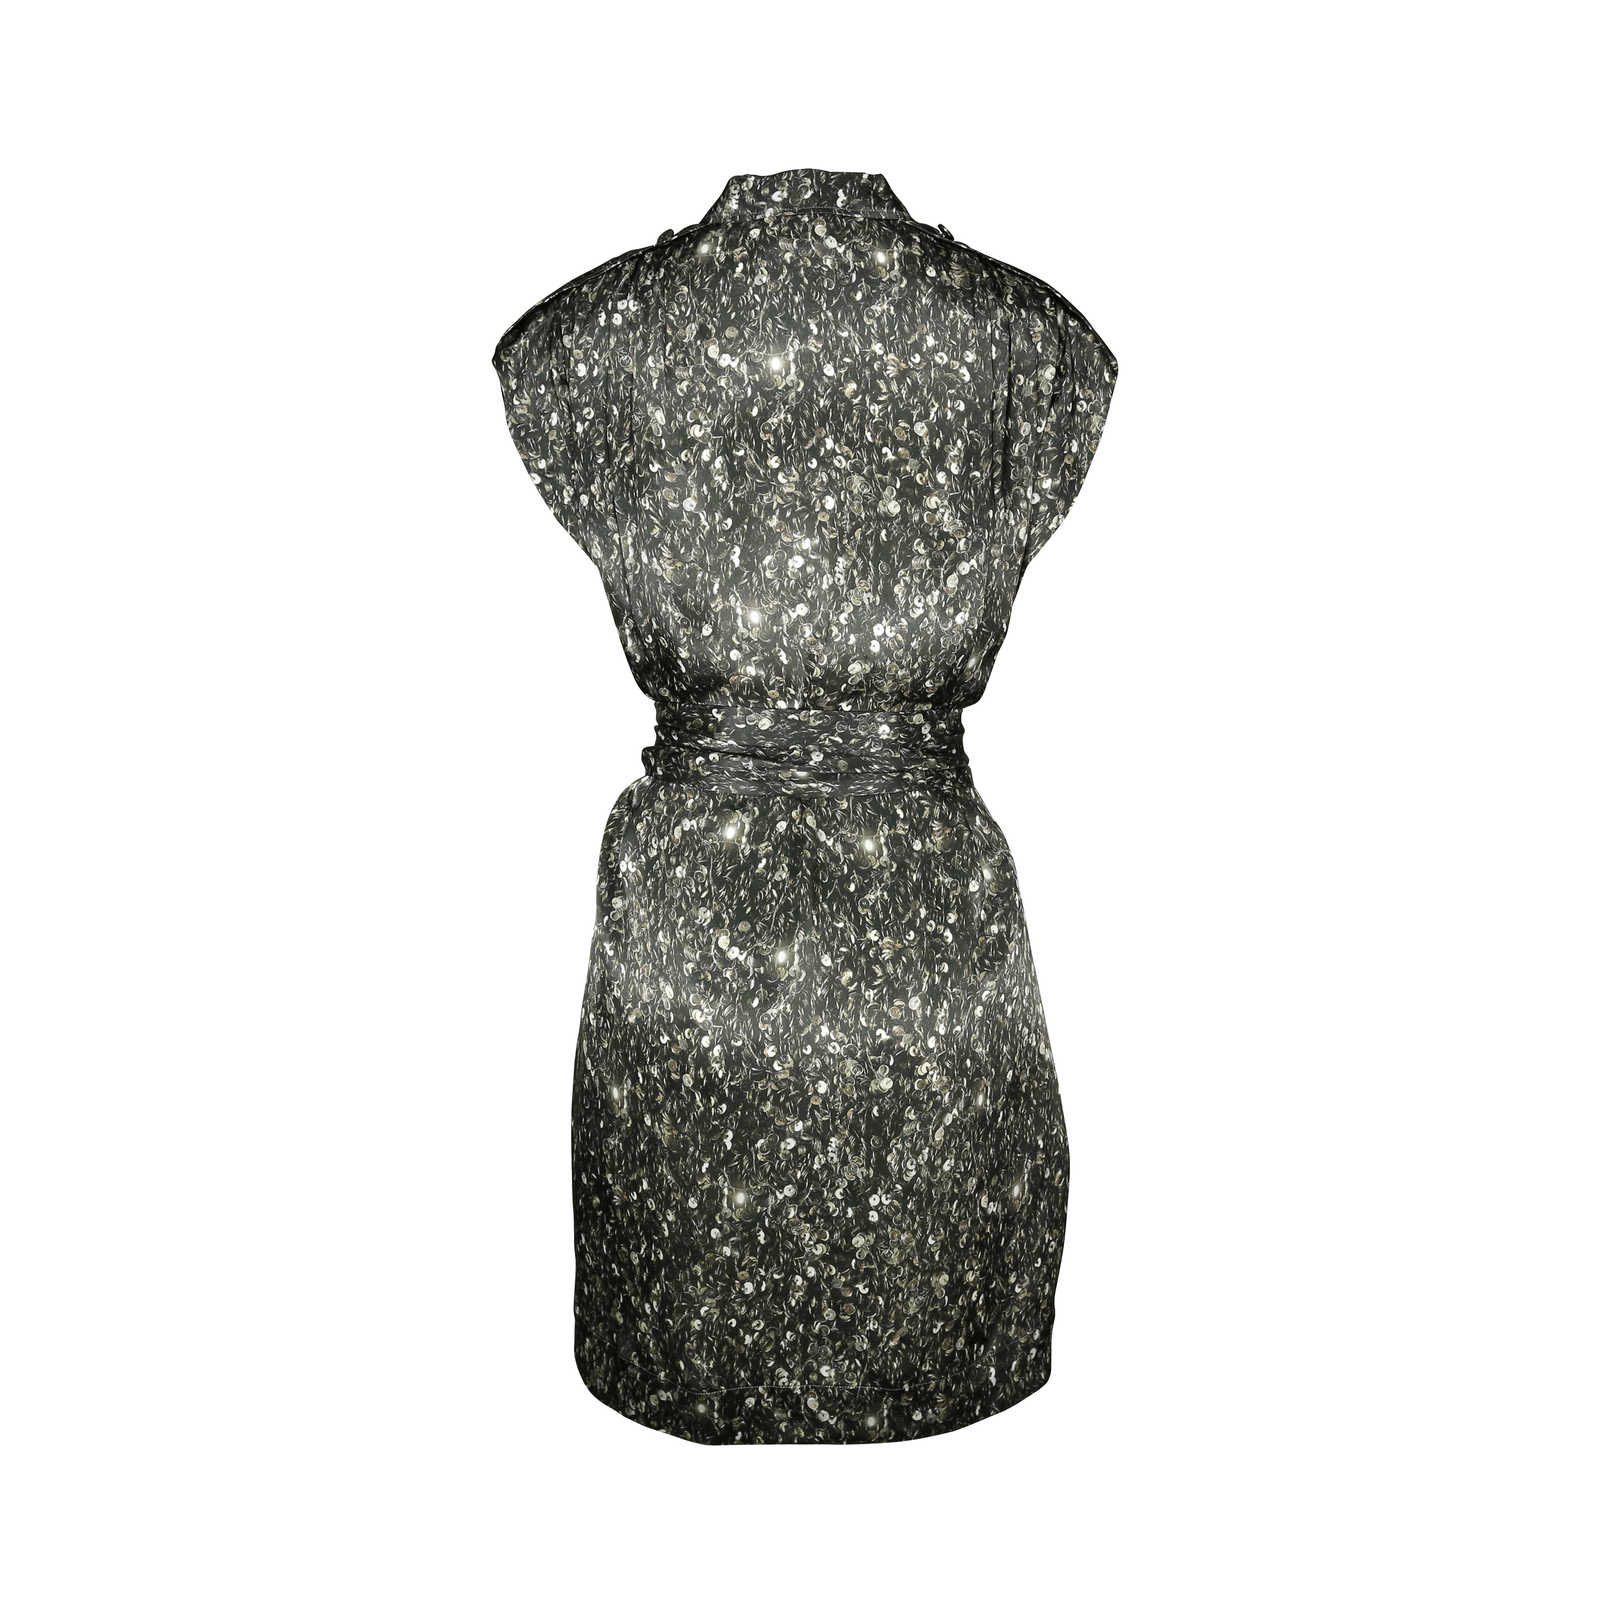 68aa77ca9e24 ... Authentic Second Hand Lanvin Sequin Print Belted Dress (PSS-143-00034)  ...